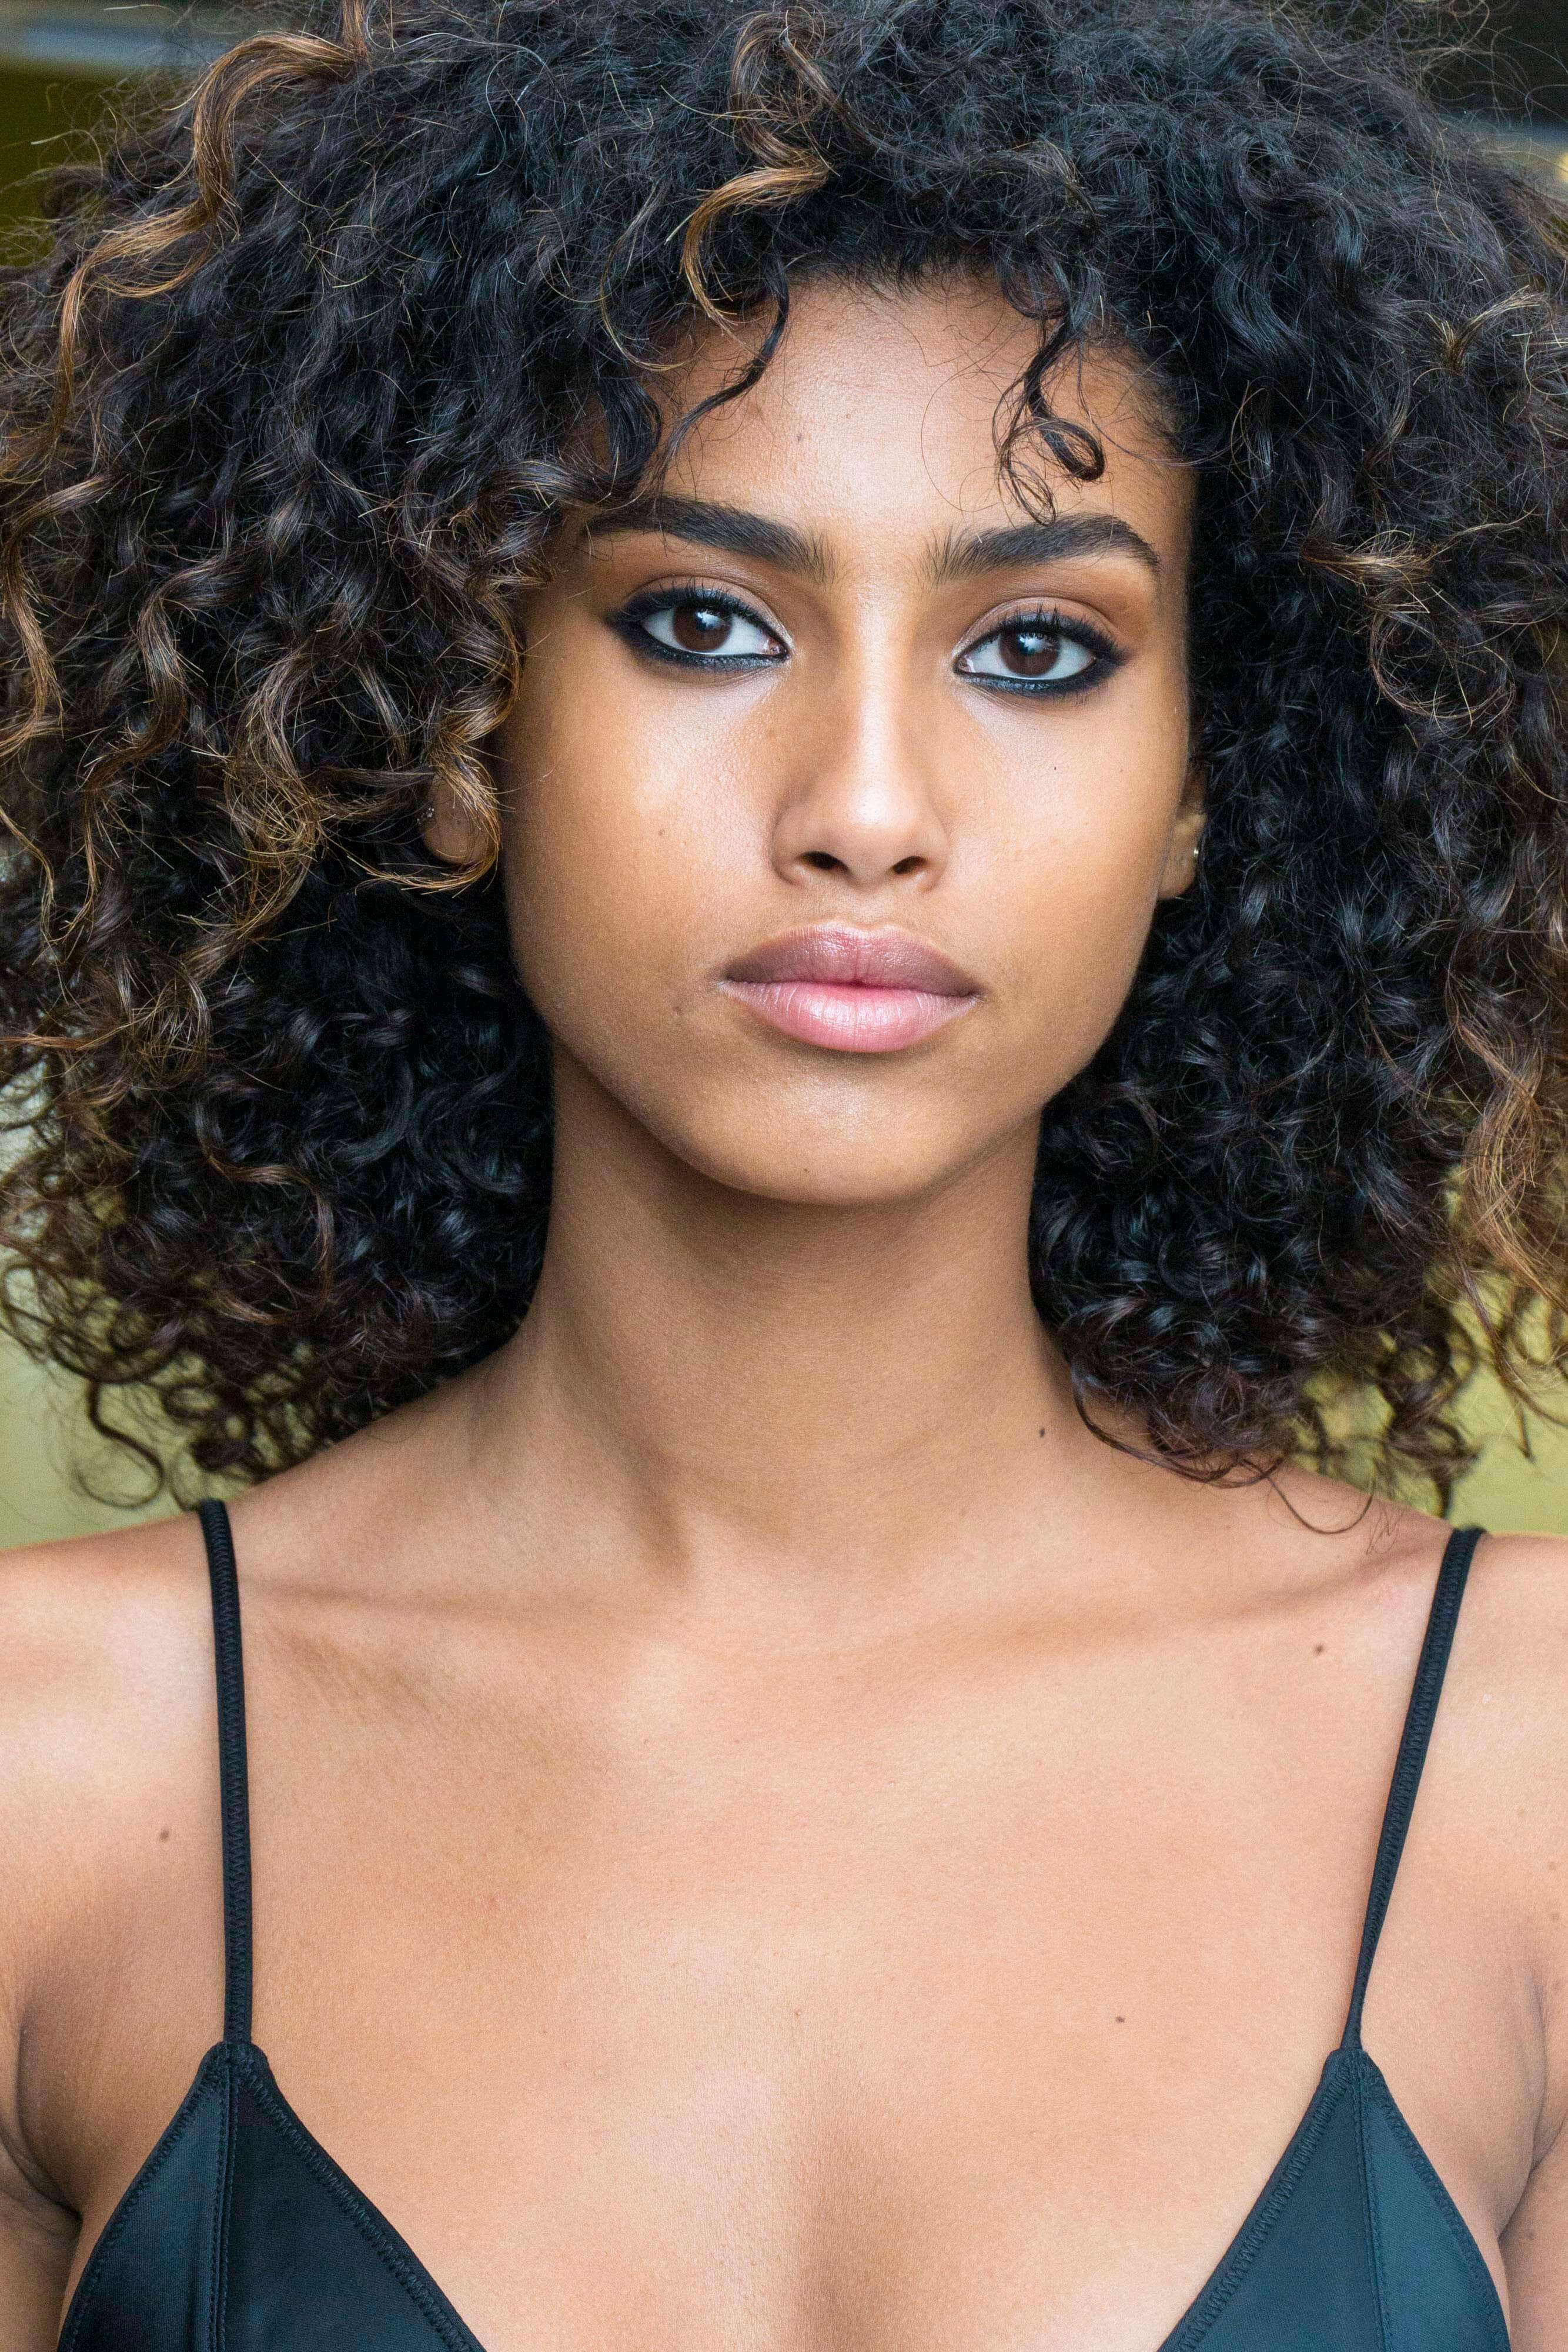 hairstyles for round faces: Black woman with brown curly hair